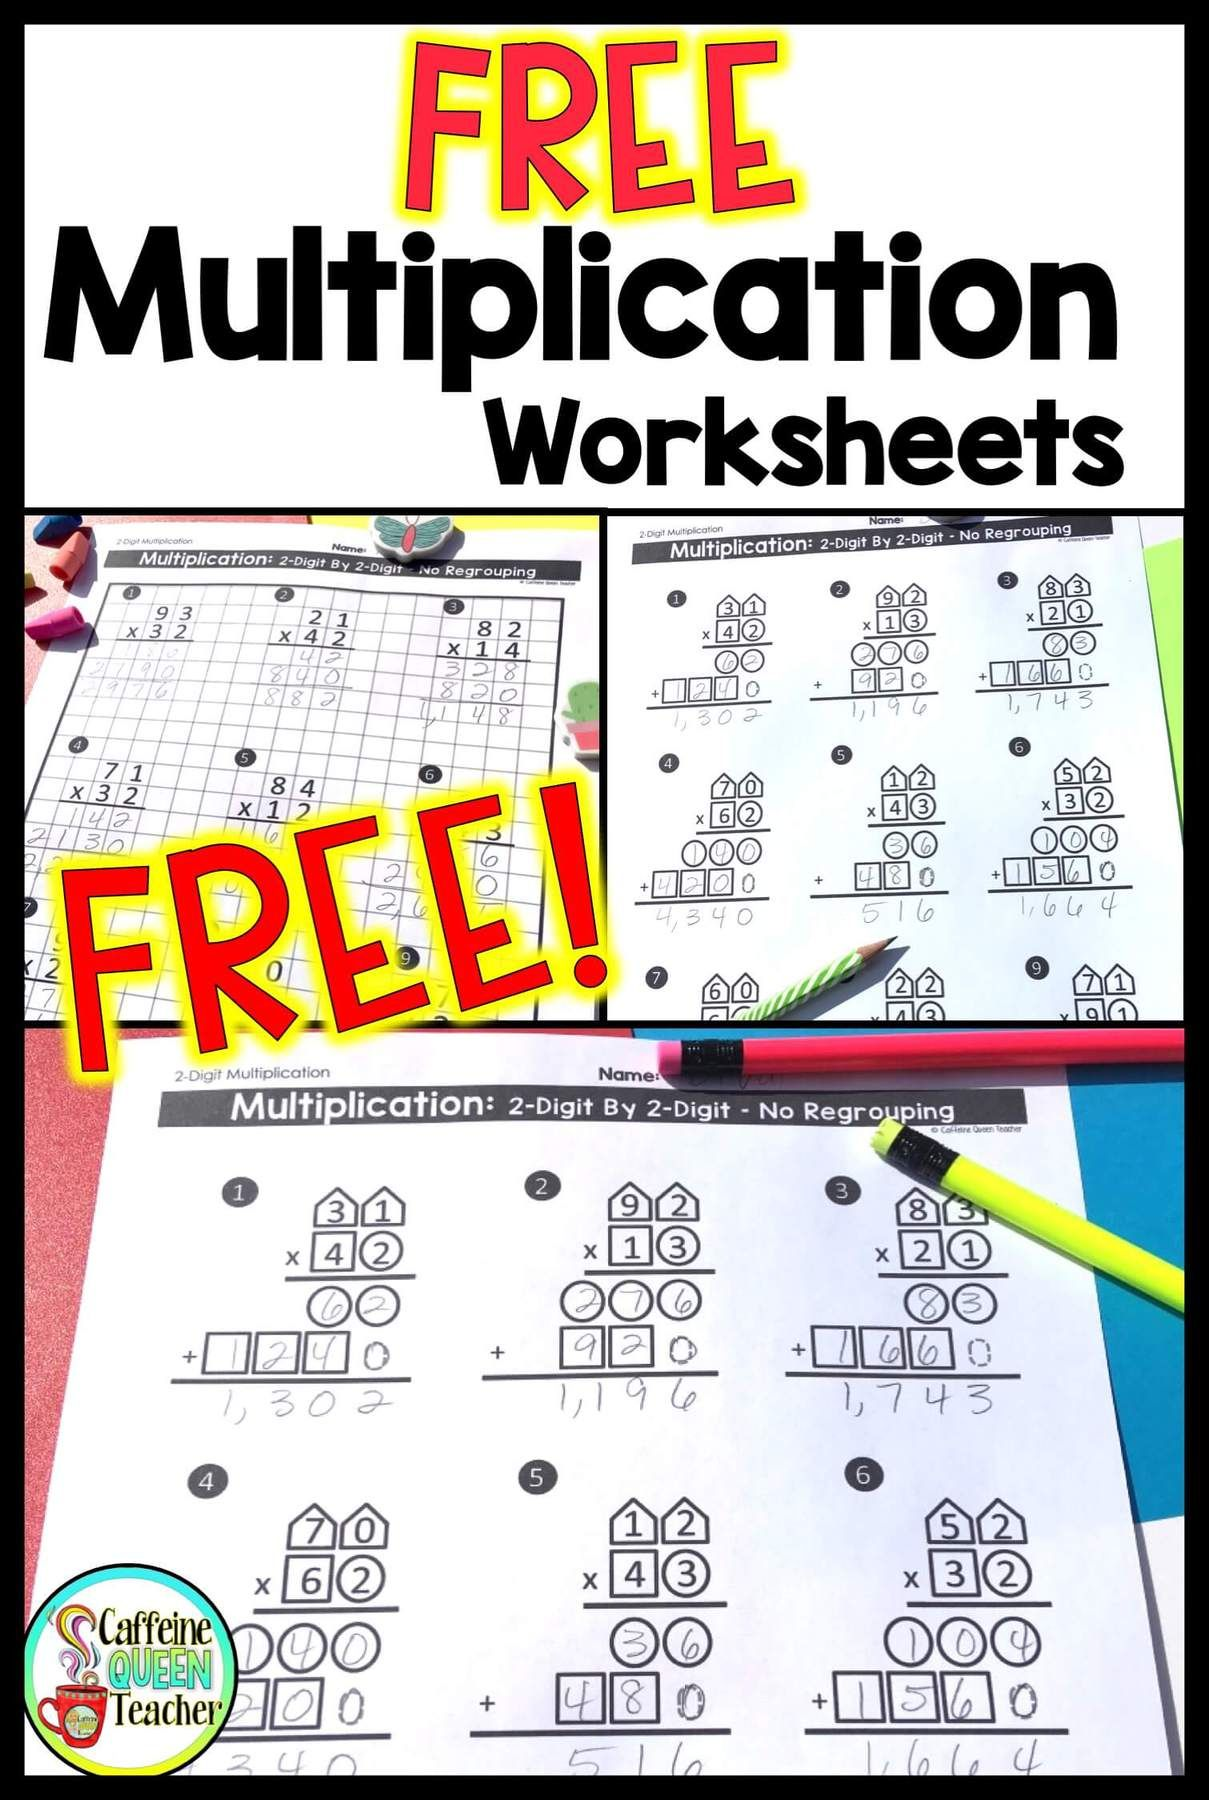 2 Digit Multiplication Worksheets Differentiated In